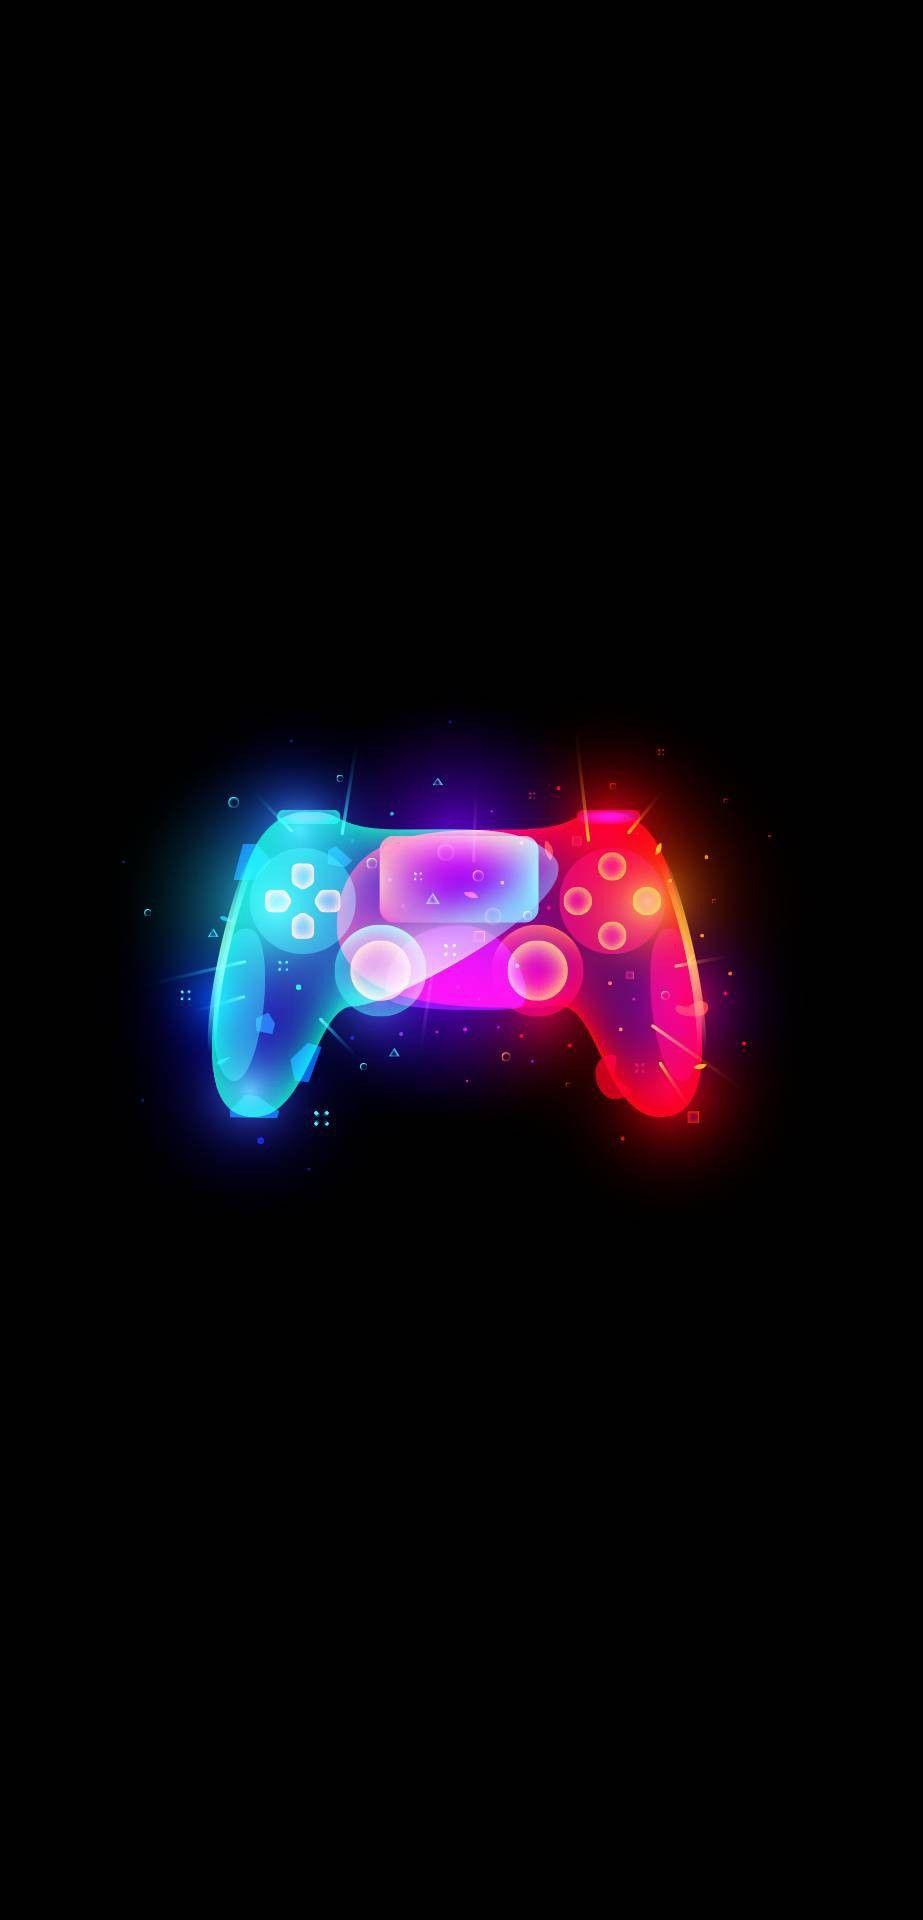 PlayStation 5 Wallpapers 923x1920